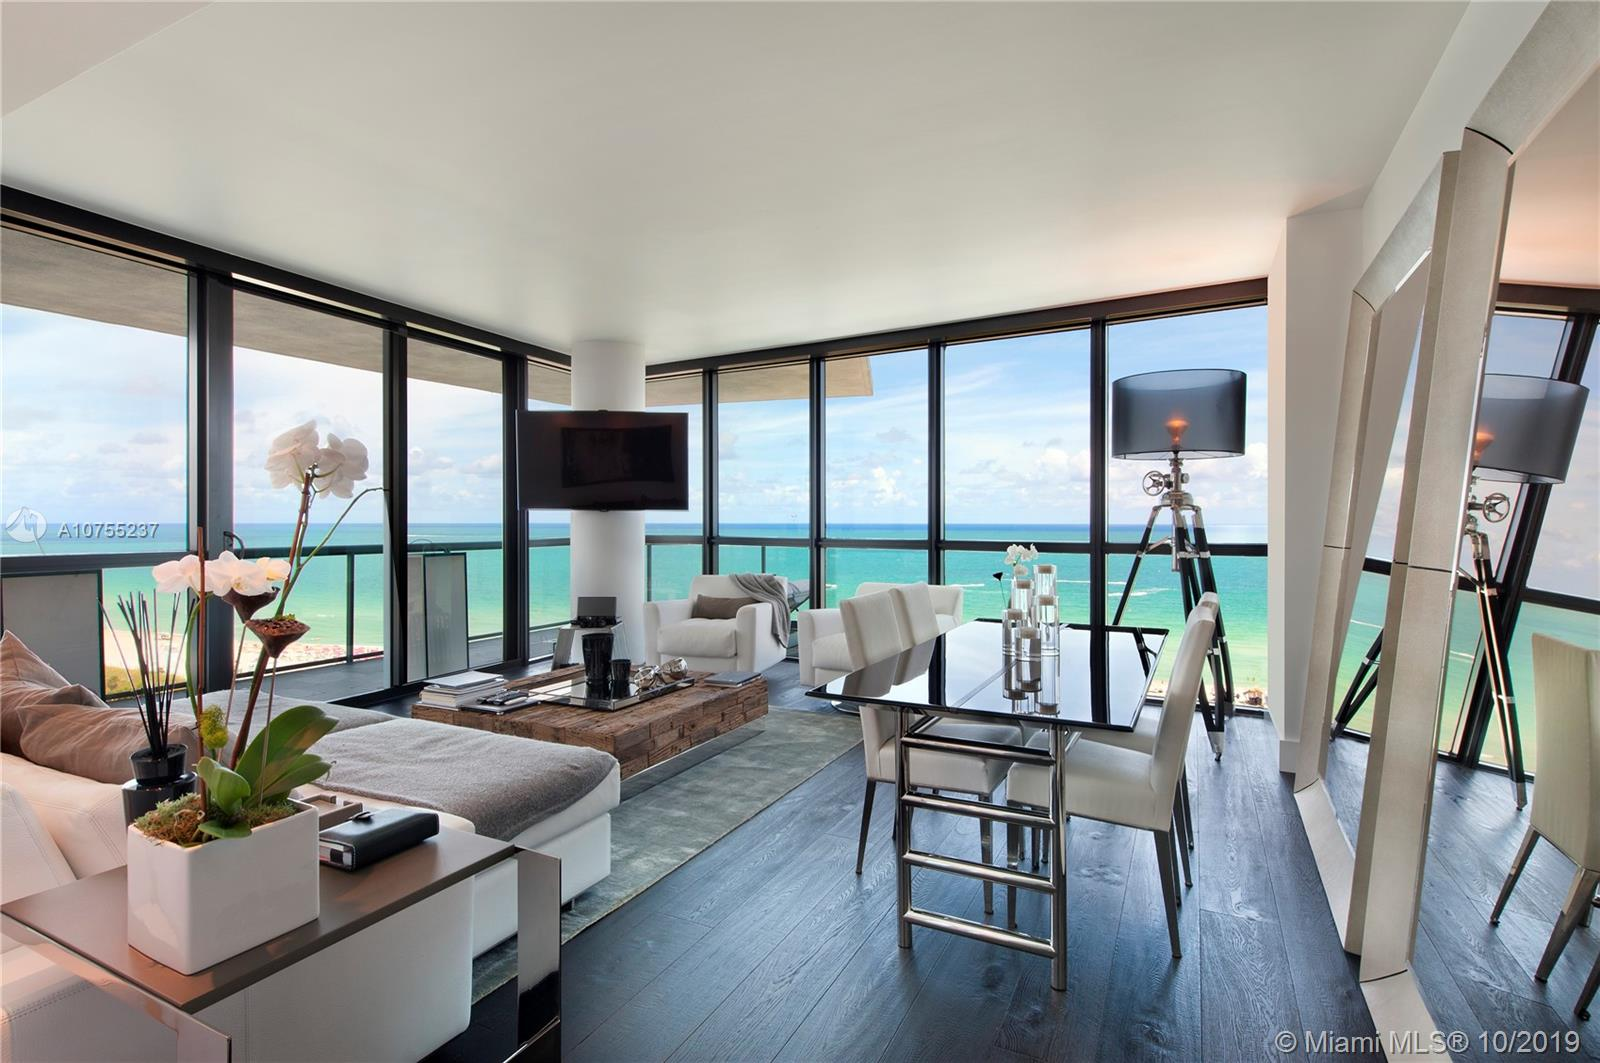 Northeast corner oceanfront 2 bedroom/2 bathroom at Setai South Beach.  Coveted line in Setai by those that know the building best.  Spectacular direct ocean views from every room.  Custom re-design, floor-to-ceiling windows, expansive wraparound terrace.  For the discerning buyer that wants to be pampered by hotel services.  The Setai's 5-Star amenities include 3 infinity pools, spa, beach, and poolside restaurant.